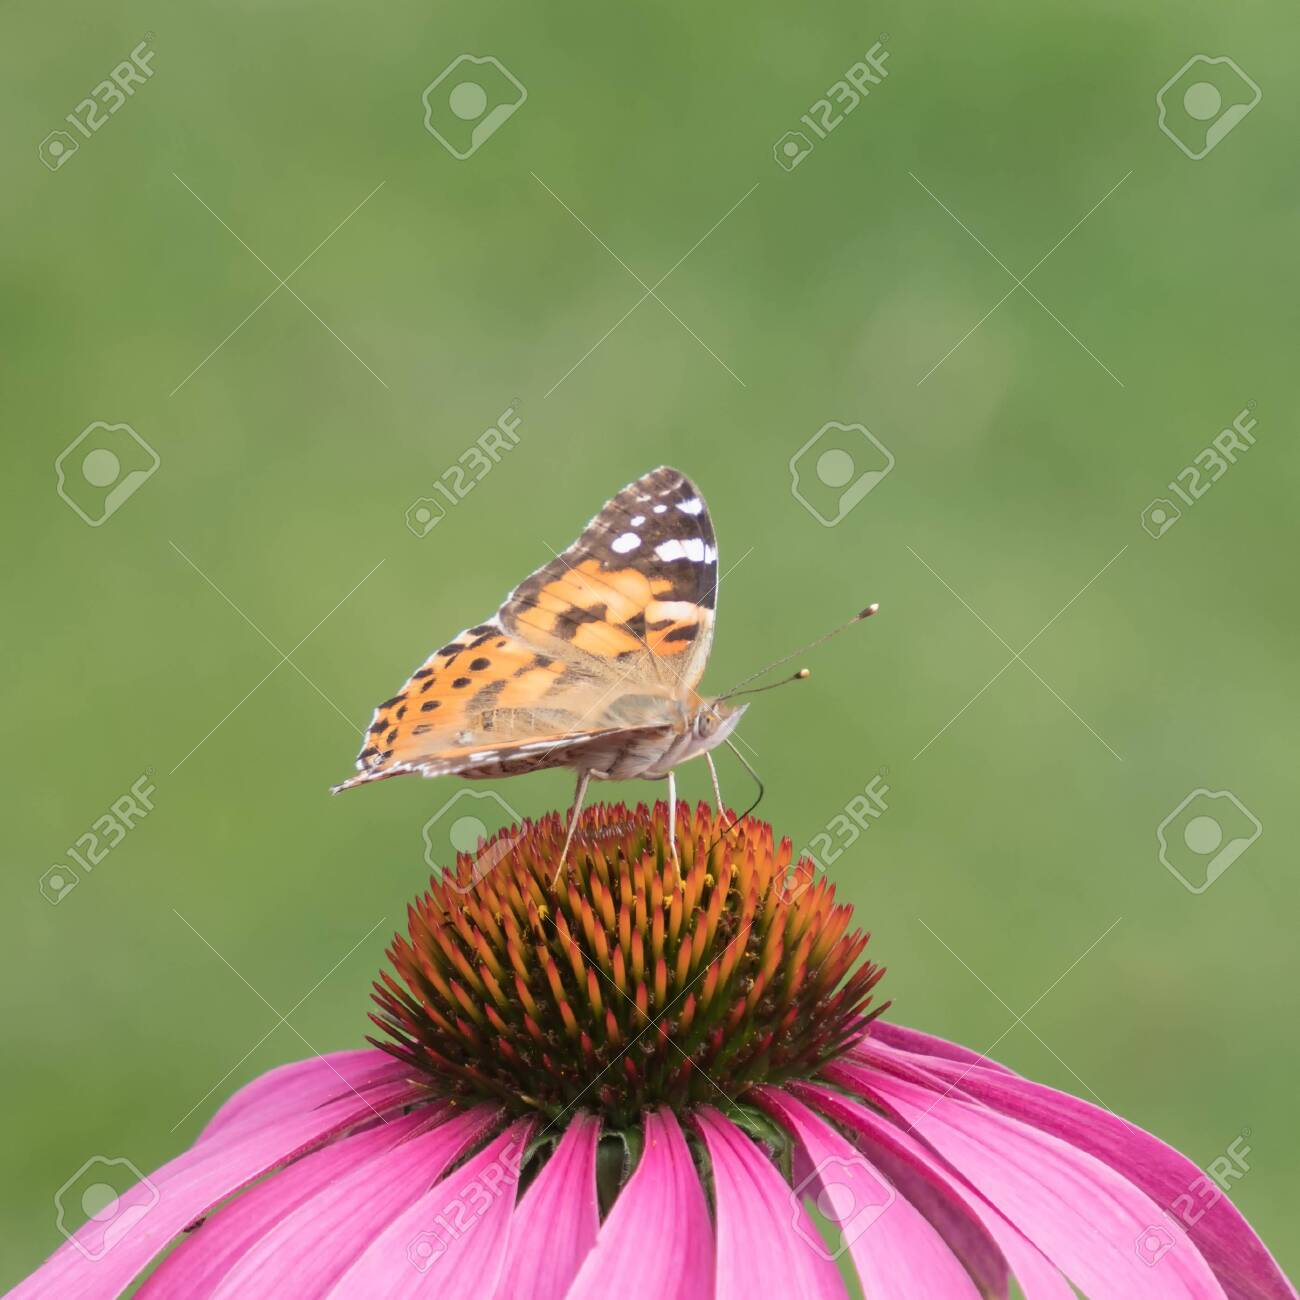 close-up of a painted lady (Vanessa cardui) on the blossom of a coneflower - 146409526